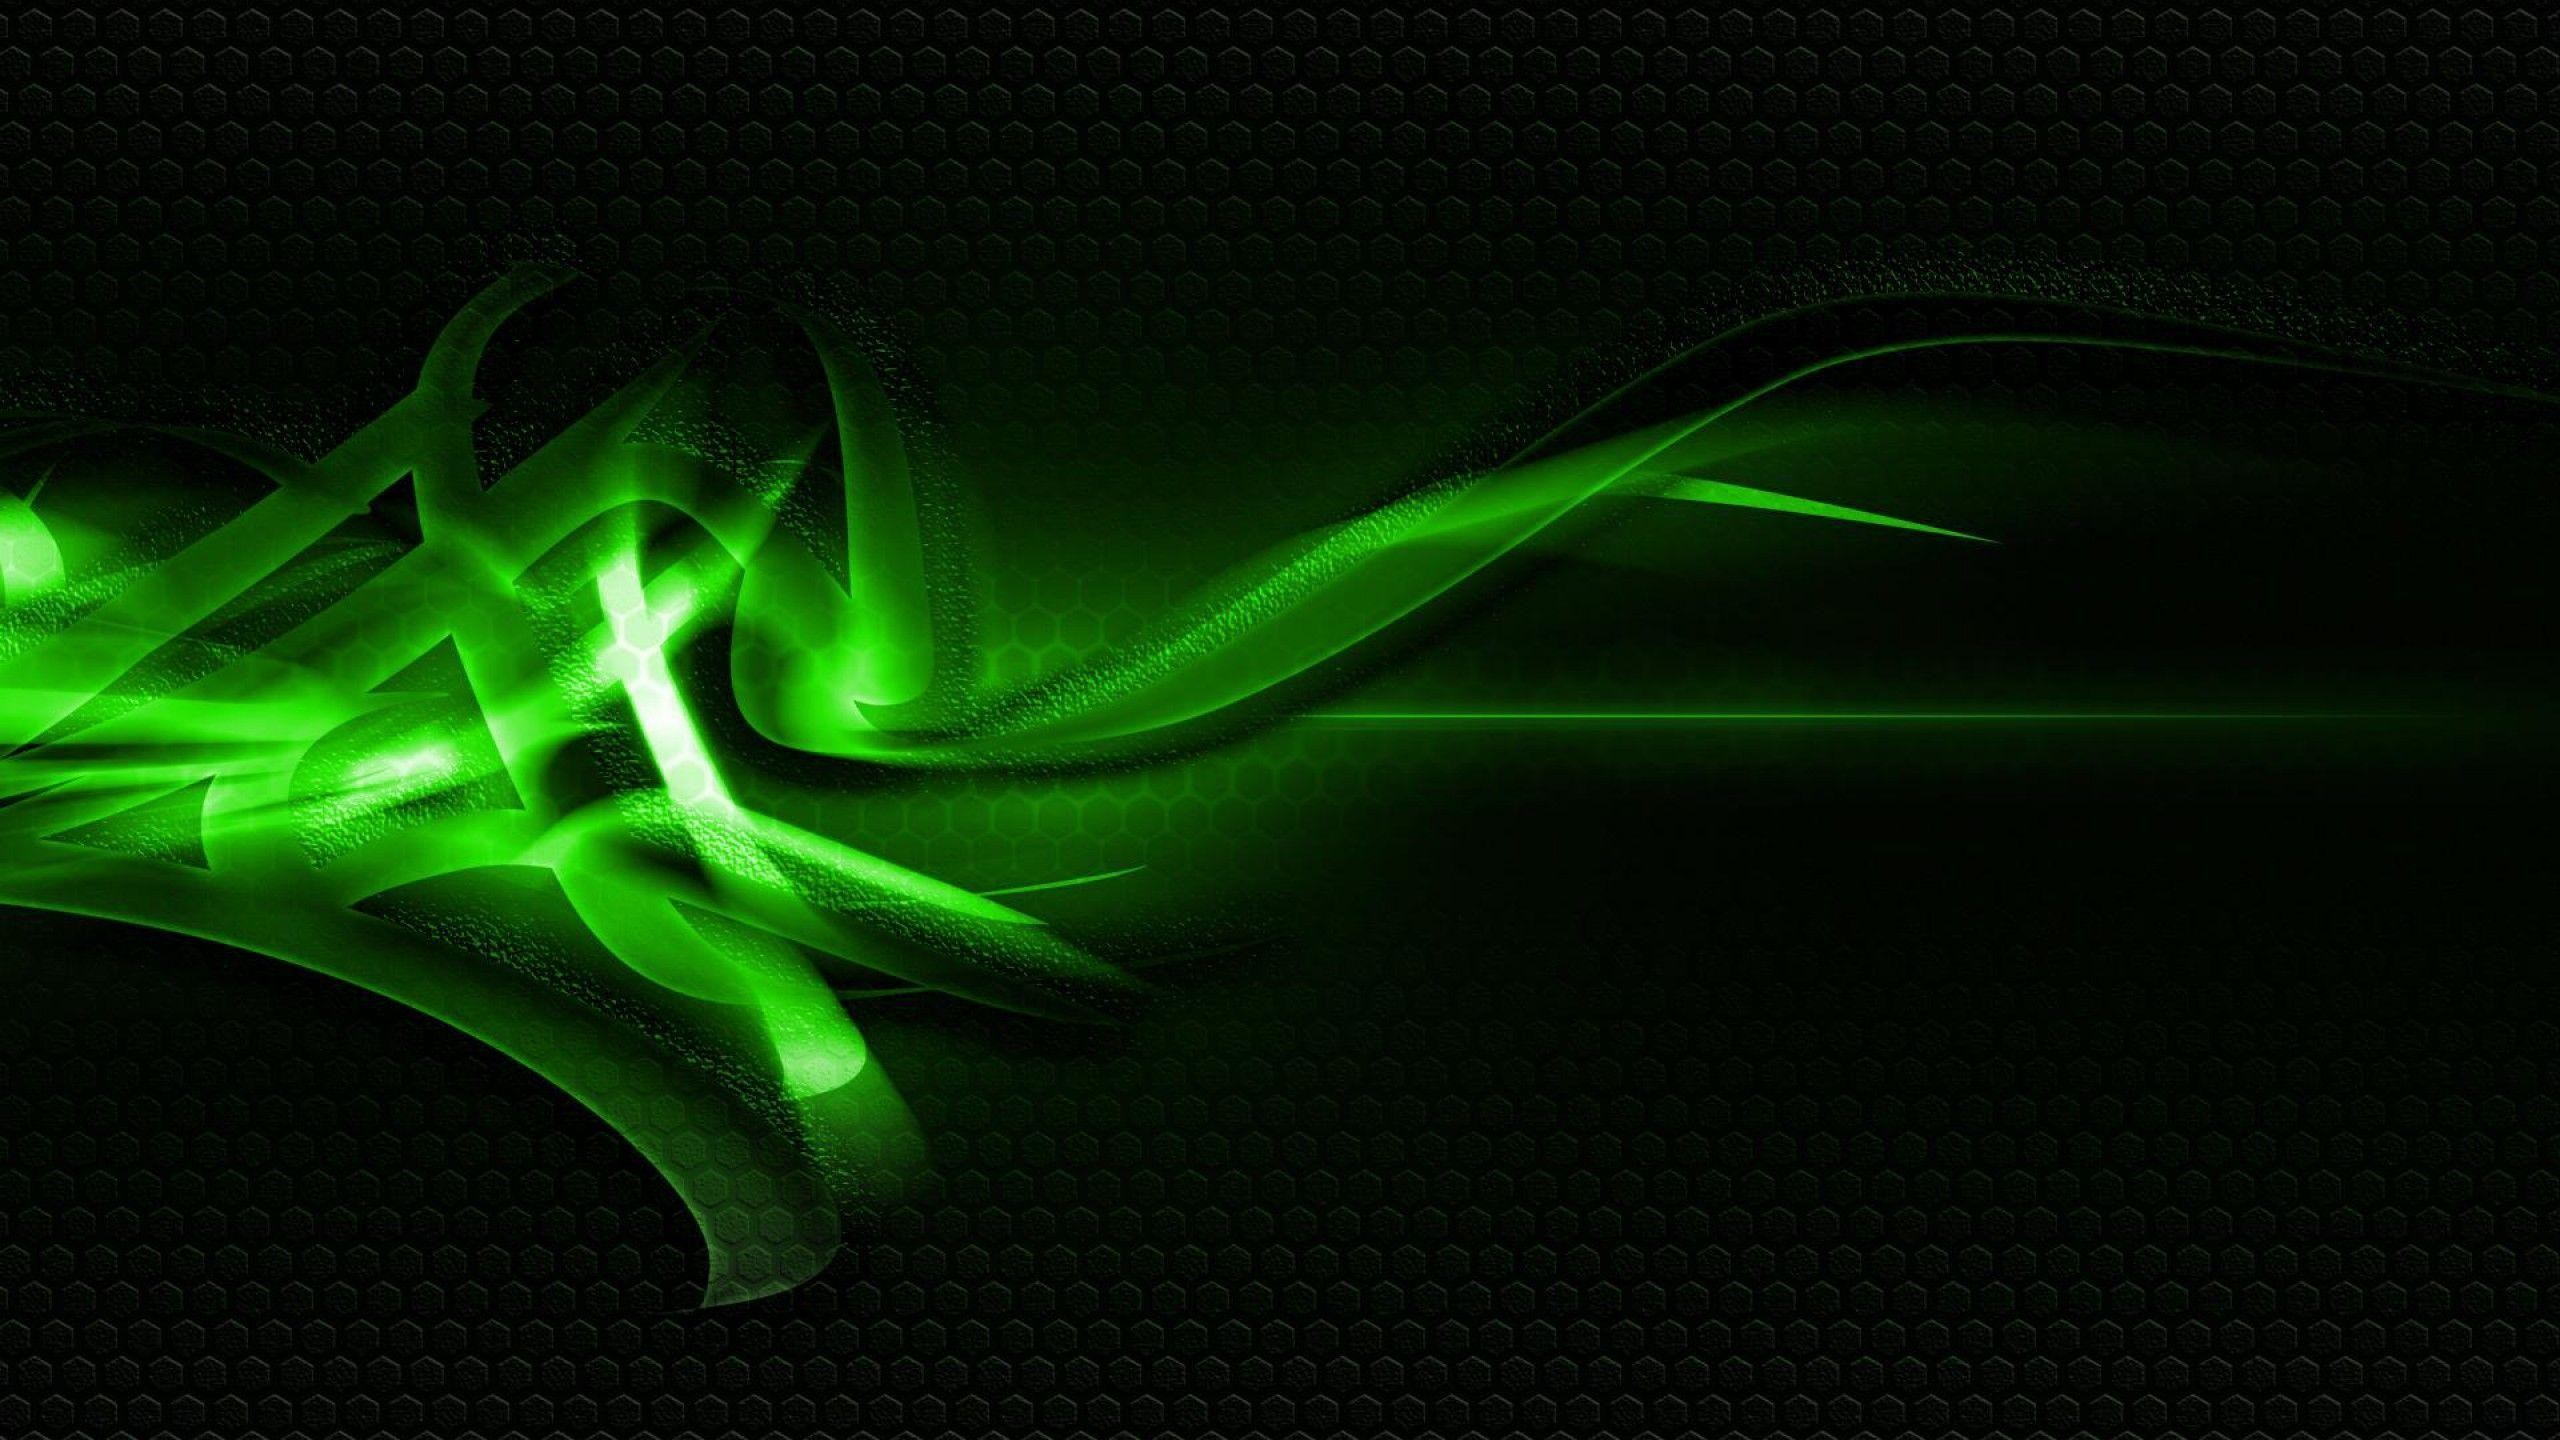 Black And Green Abstract Wallpapers #11818 | Hdwidescreens.